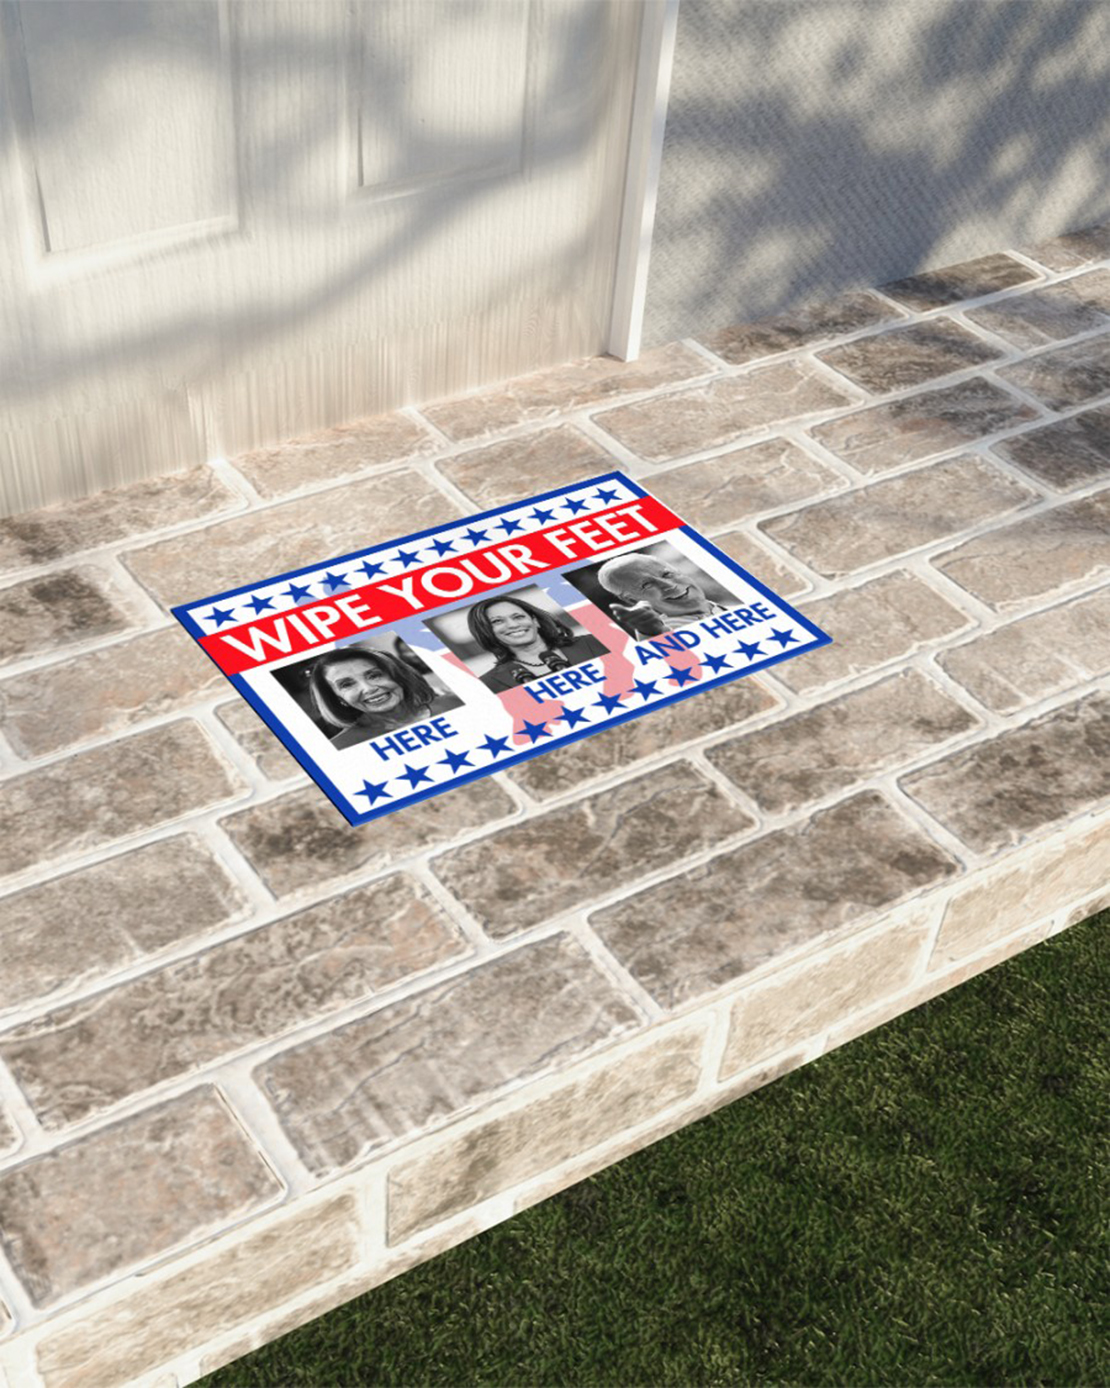 Wipe your feet here and here doormat - Picture 2